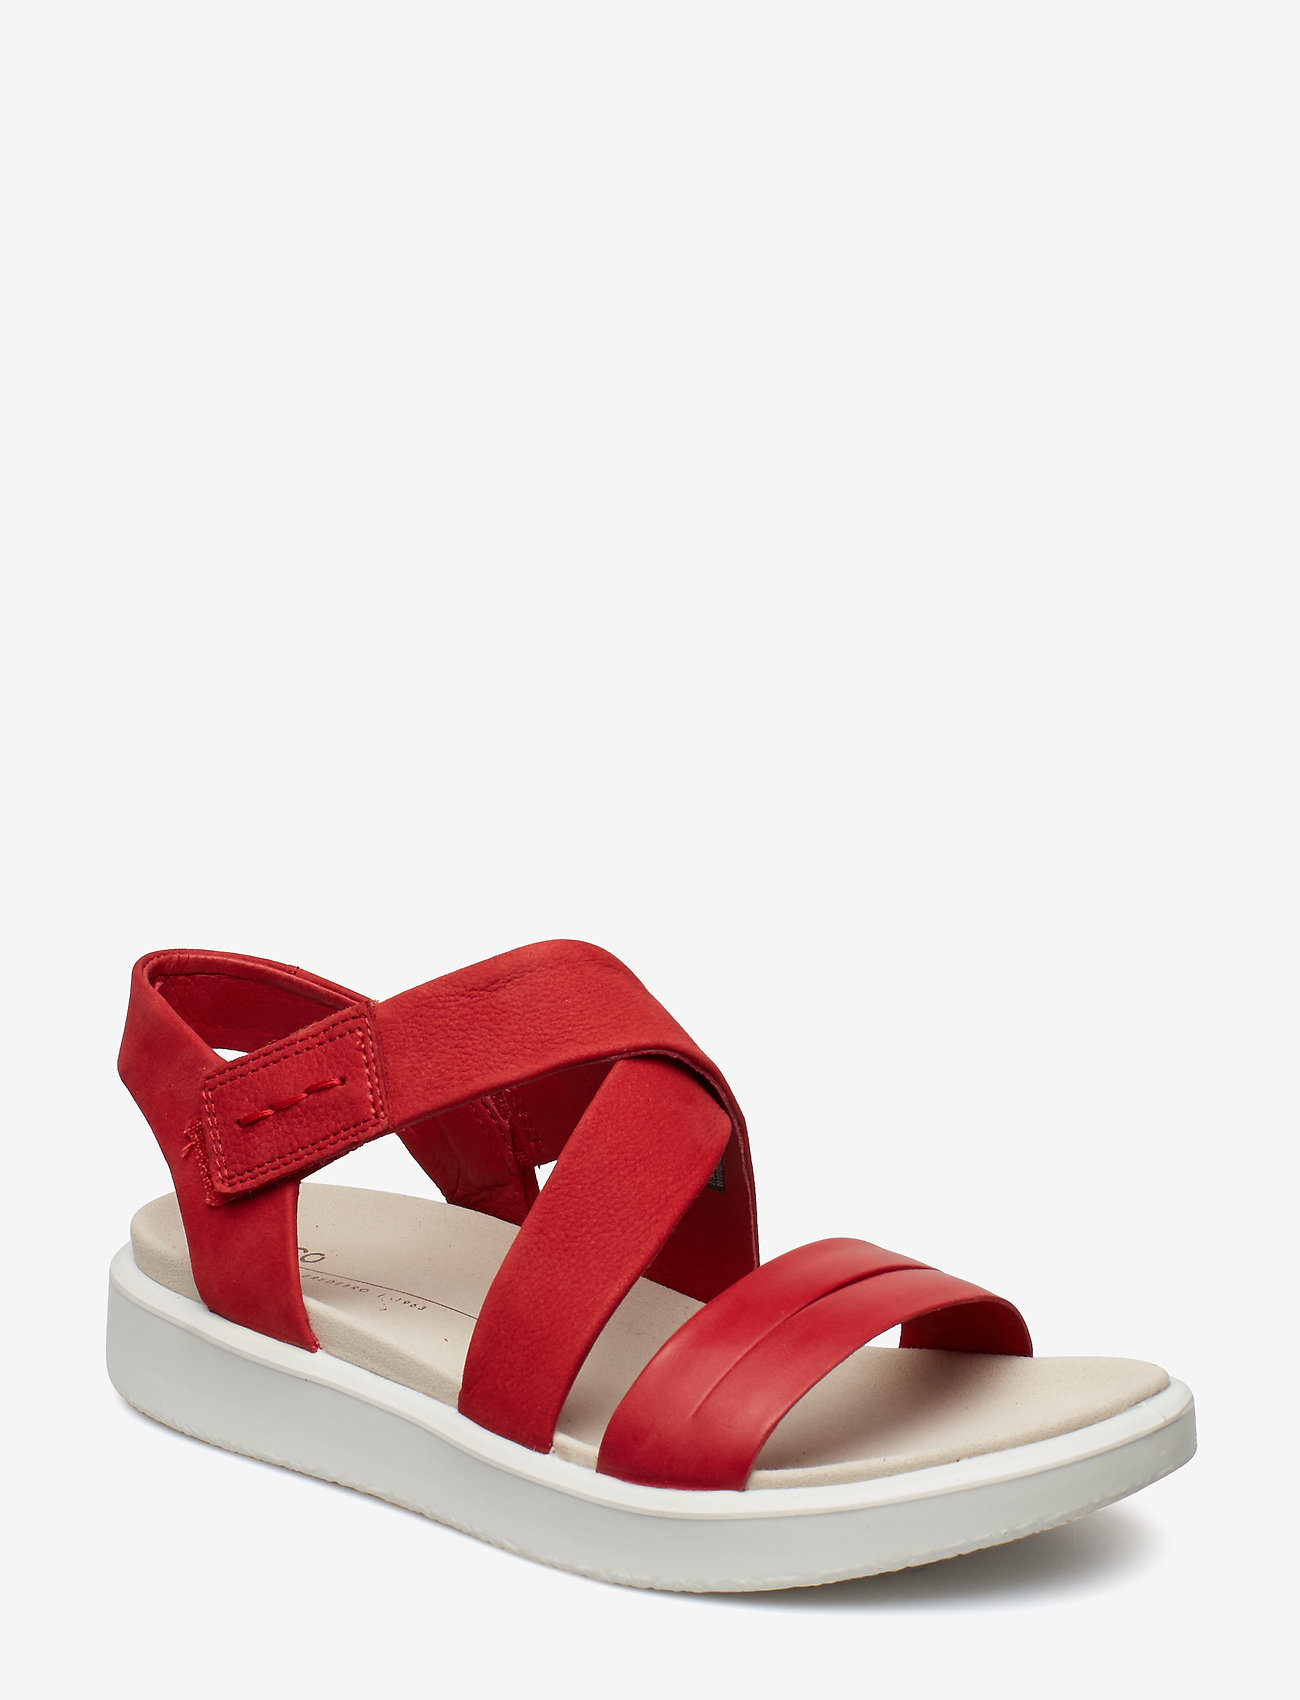 ECCO - FLOWT W - flat sandals - chili red/chili red - 0